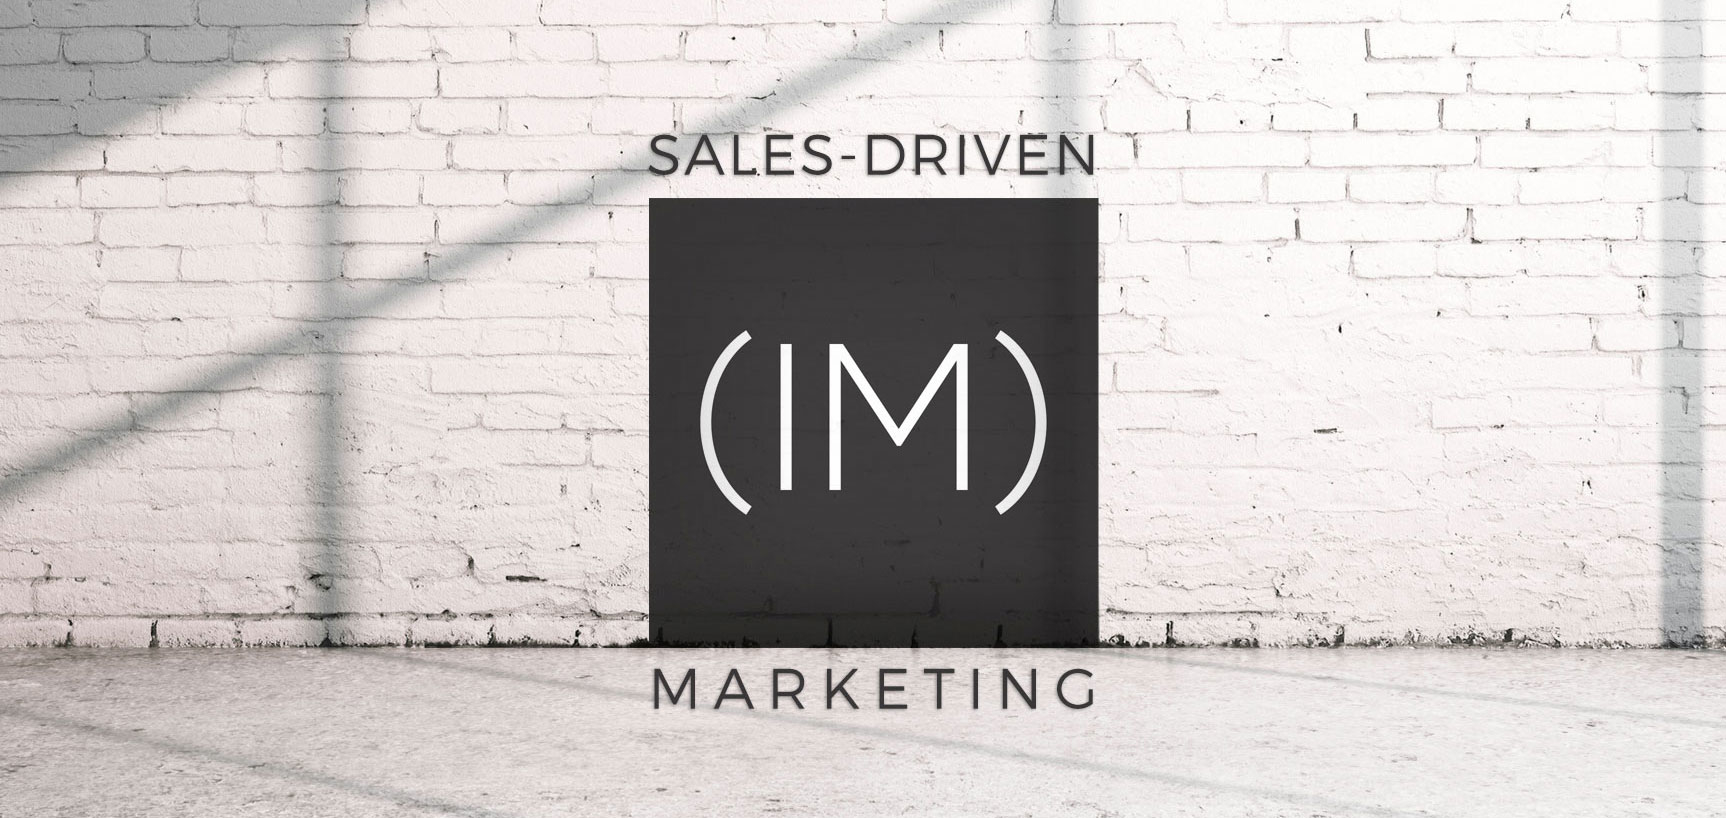 (IM) Interactive Marketing: Atlanta B2B Online Marketing Agency | Company